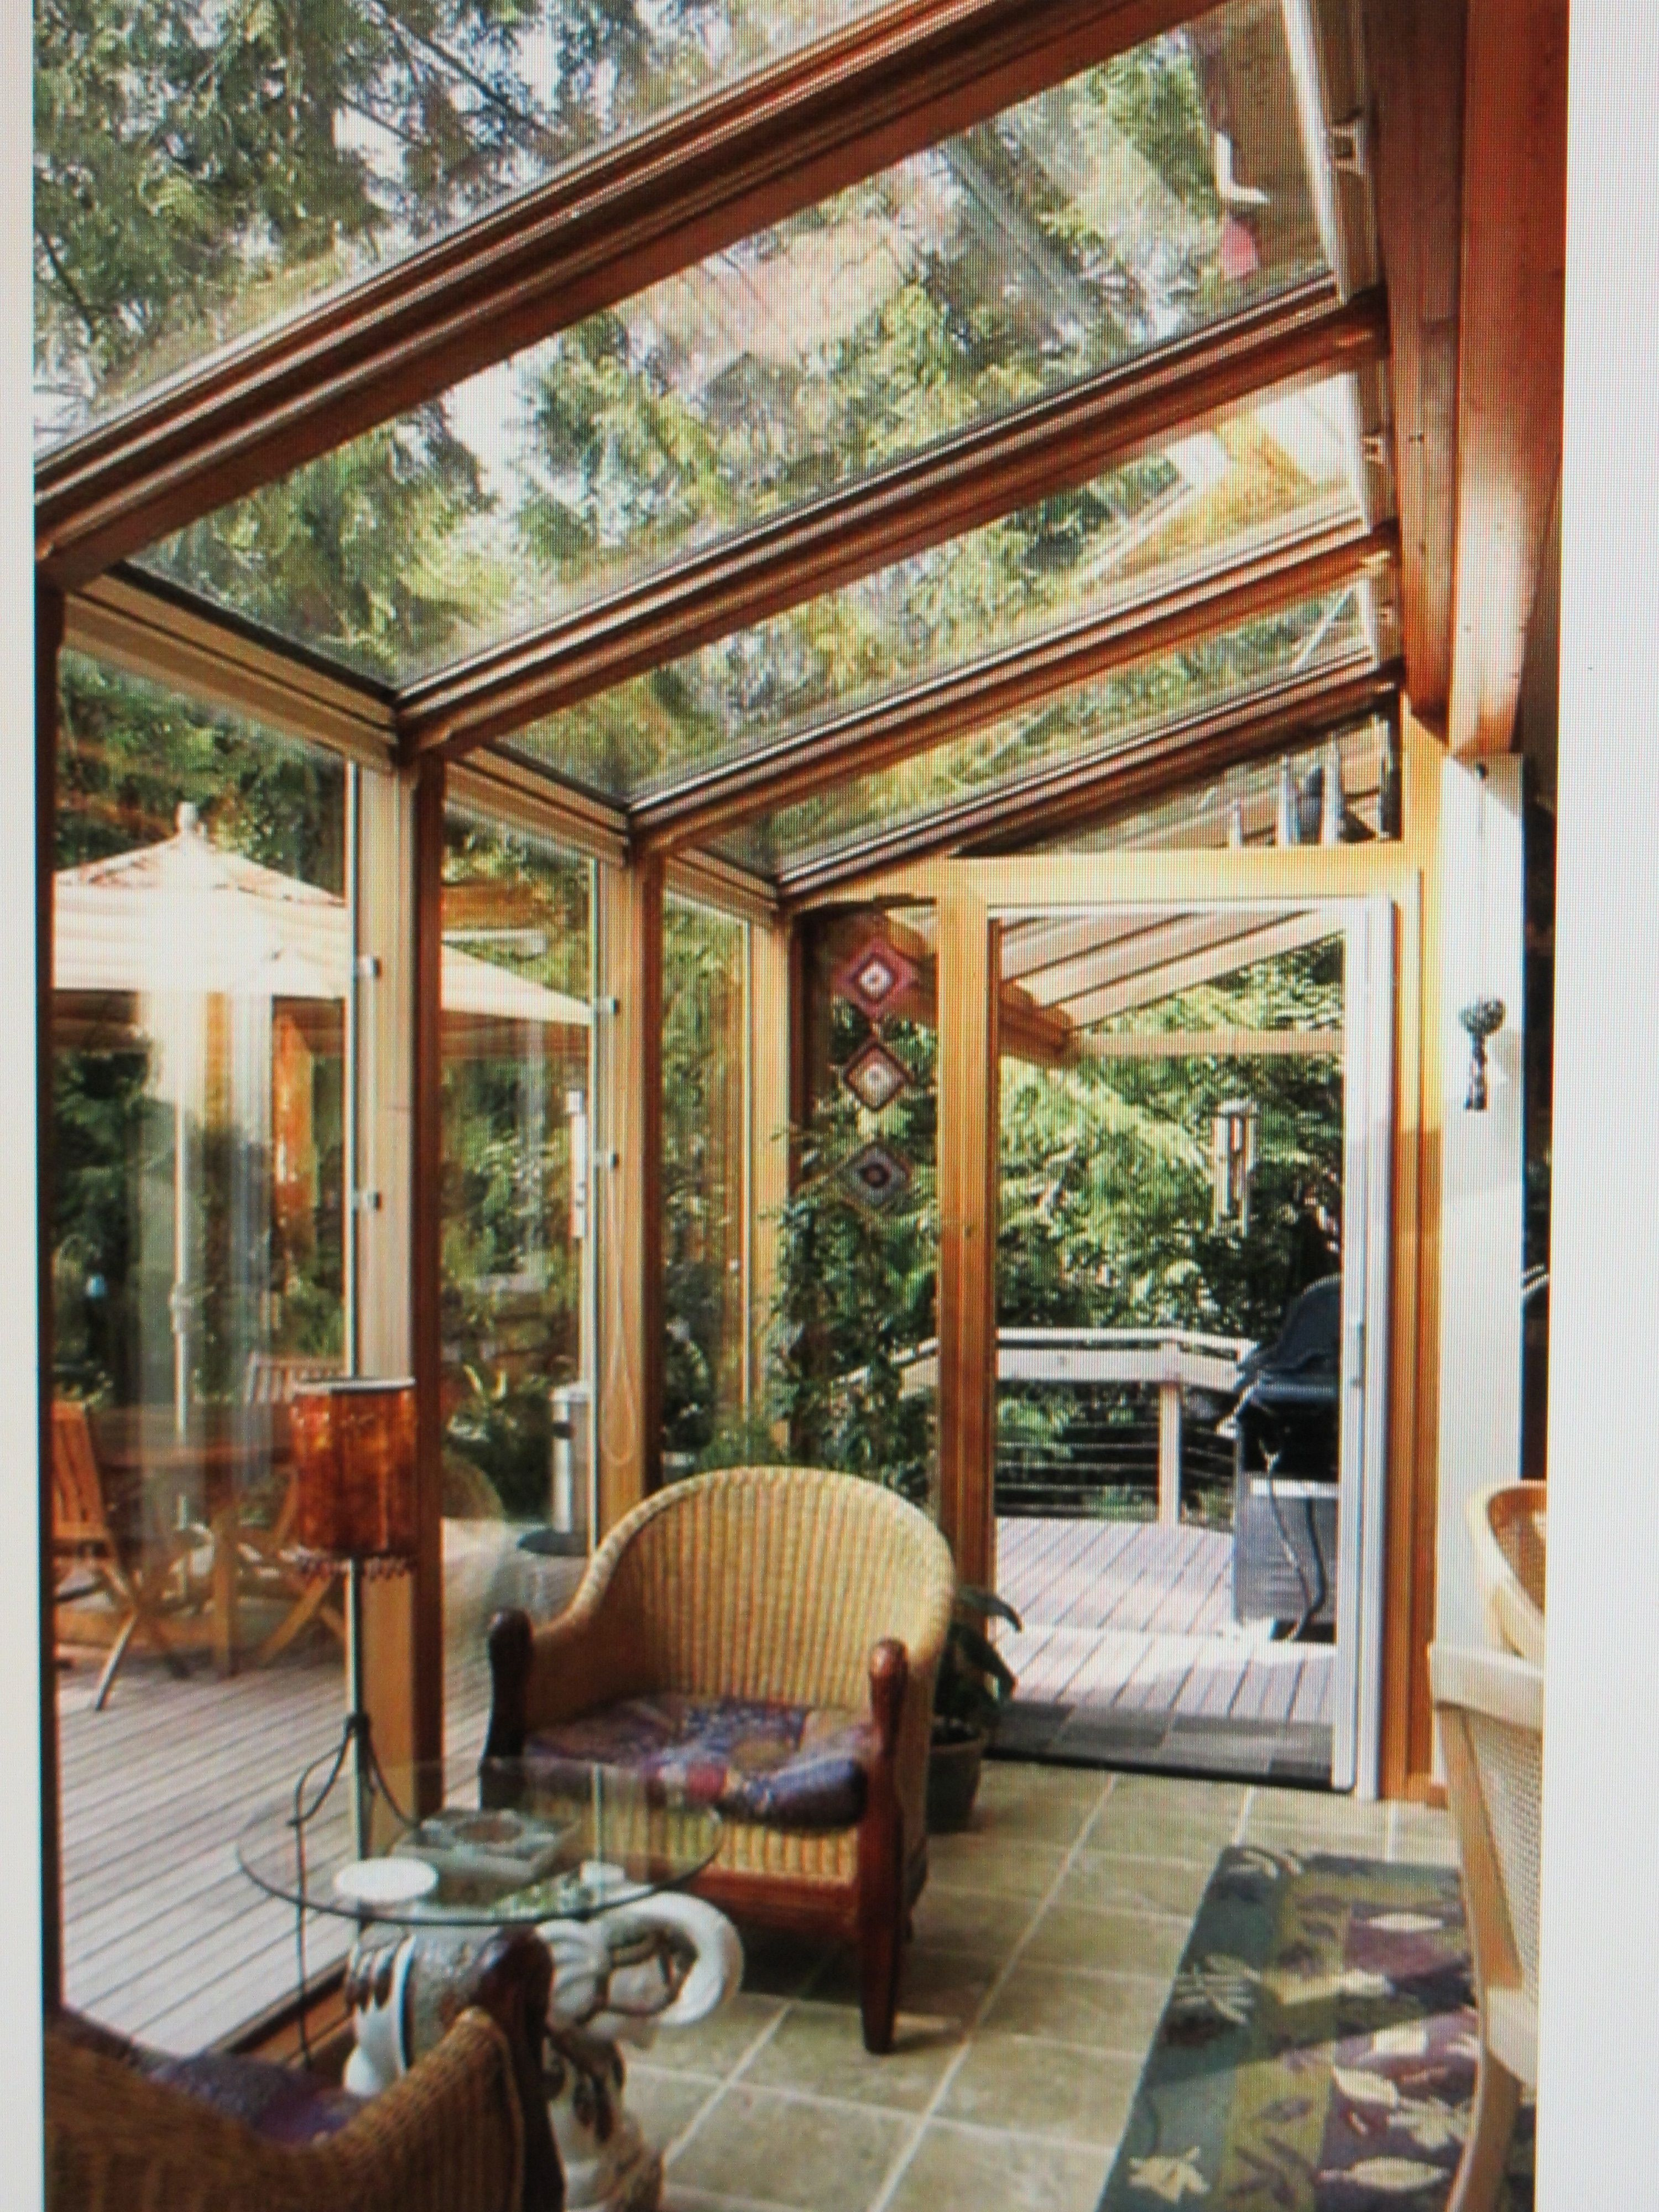 Back Porch Additions Best Ideas About Room Additions On House Additions Interior Designs: Another Sunroom { I'm A Fan} And The Wonderful Deck.